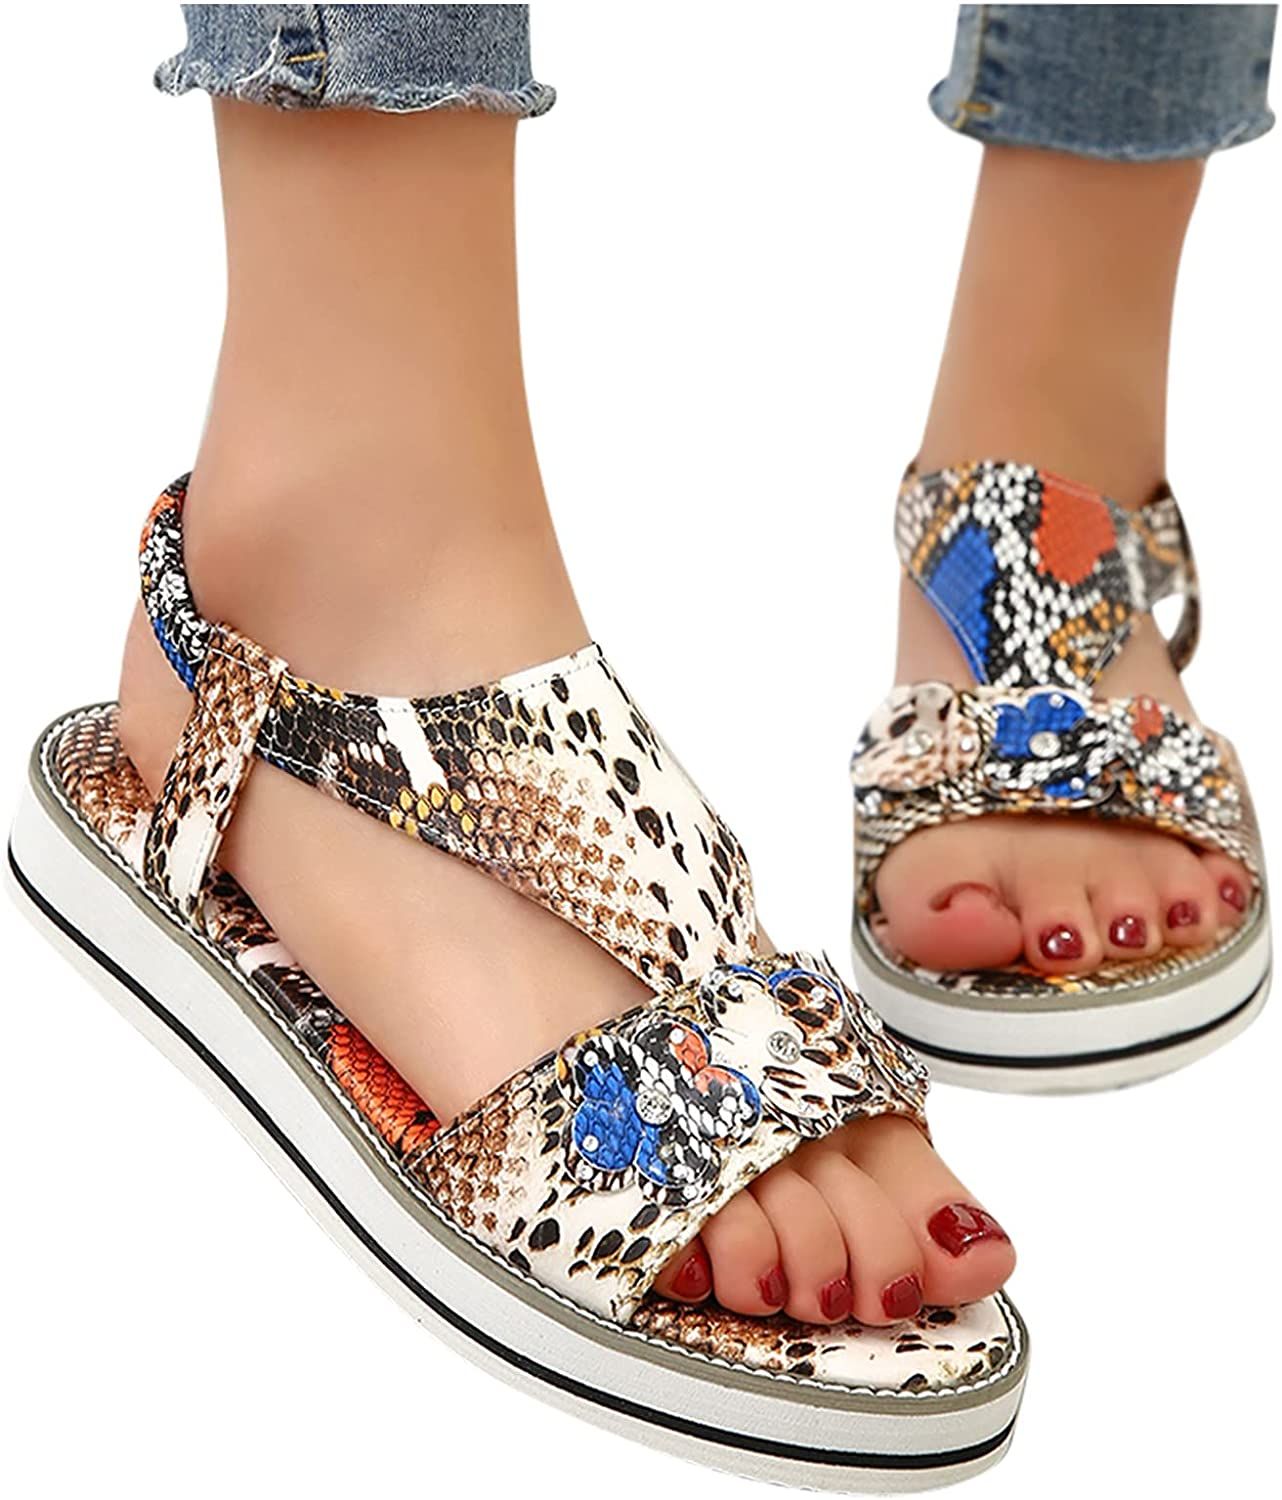 Hgndbloo Summer Sandals for Women Platform P Flat Seasonal Wrap Introduction Recommended Causal Slipper